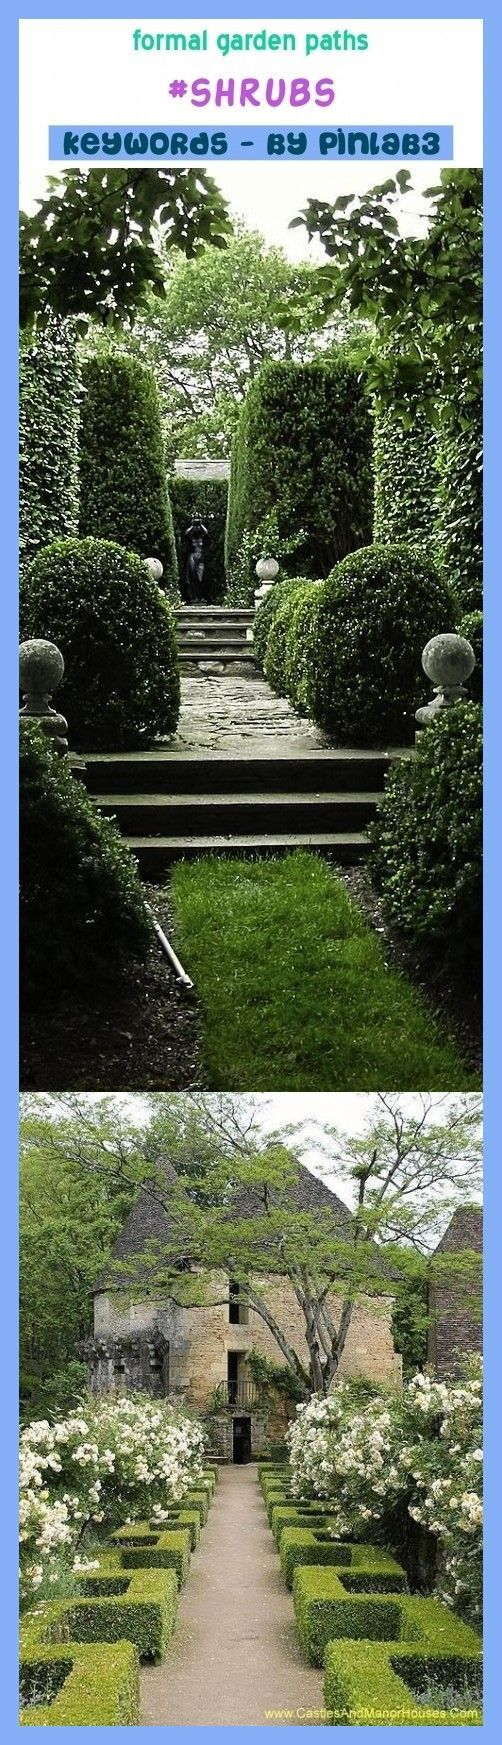 Photo of Formal garden paths #formal #garden #paths #formale #gartenwege #a    La